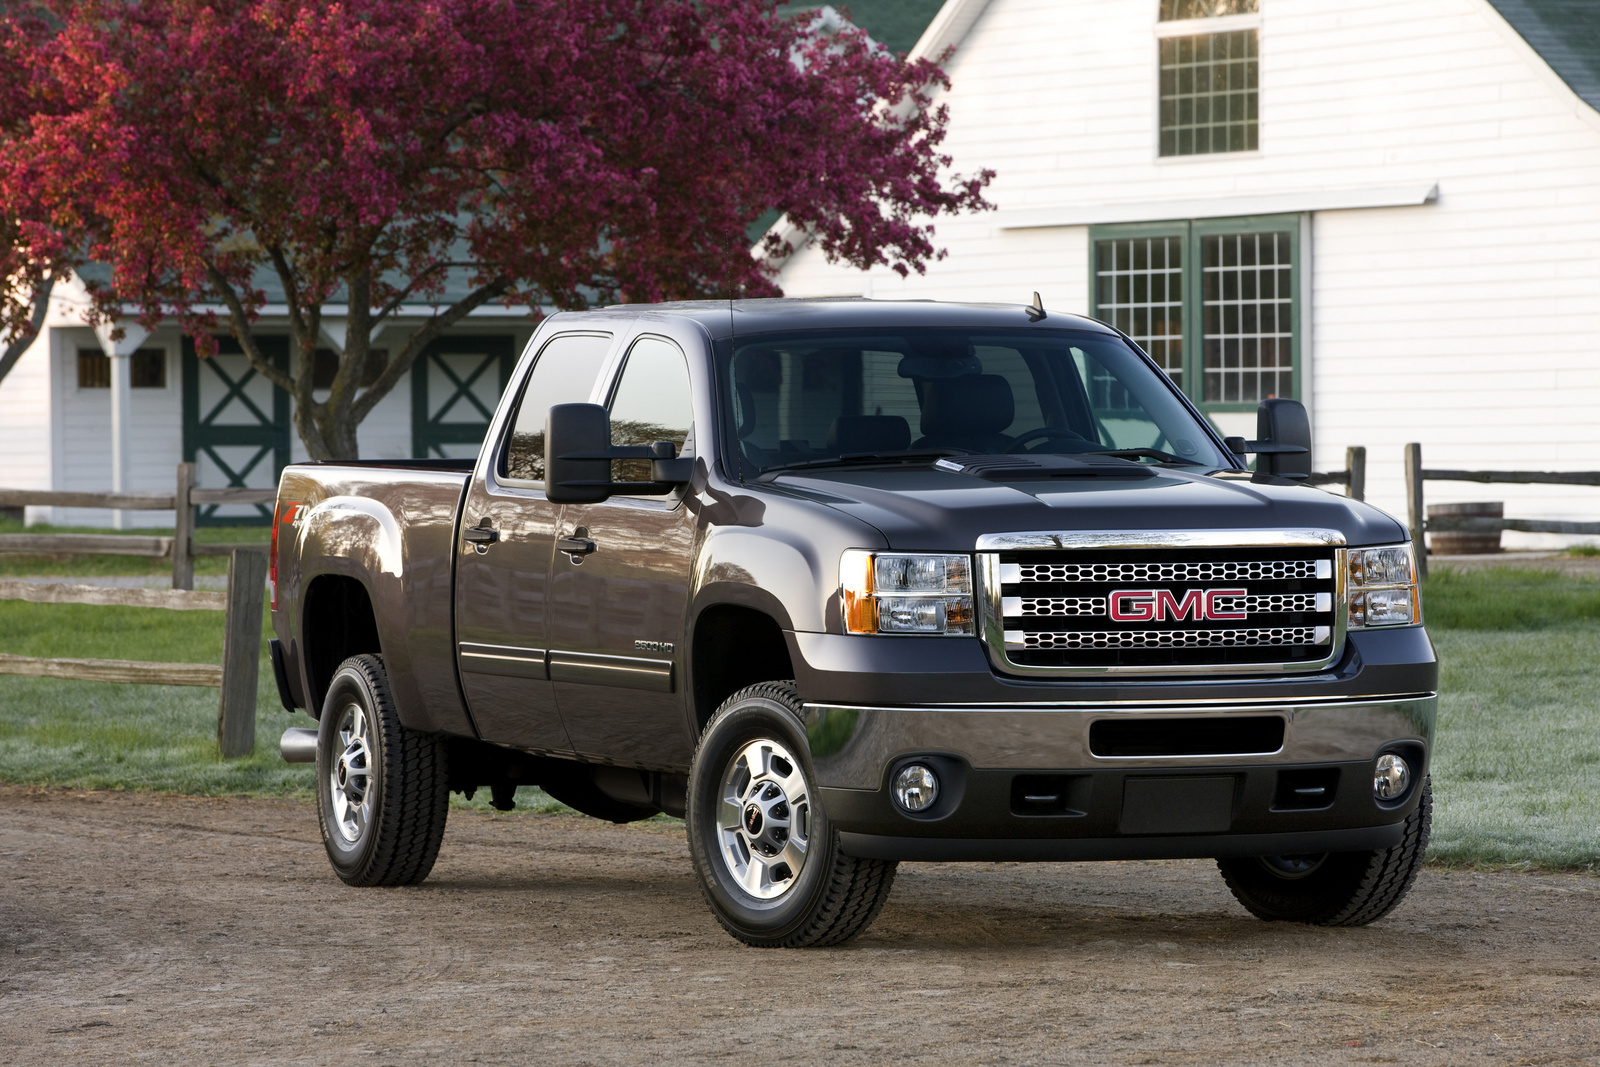 Gmc 2500hd photo - 4